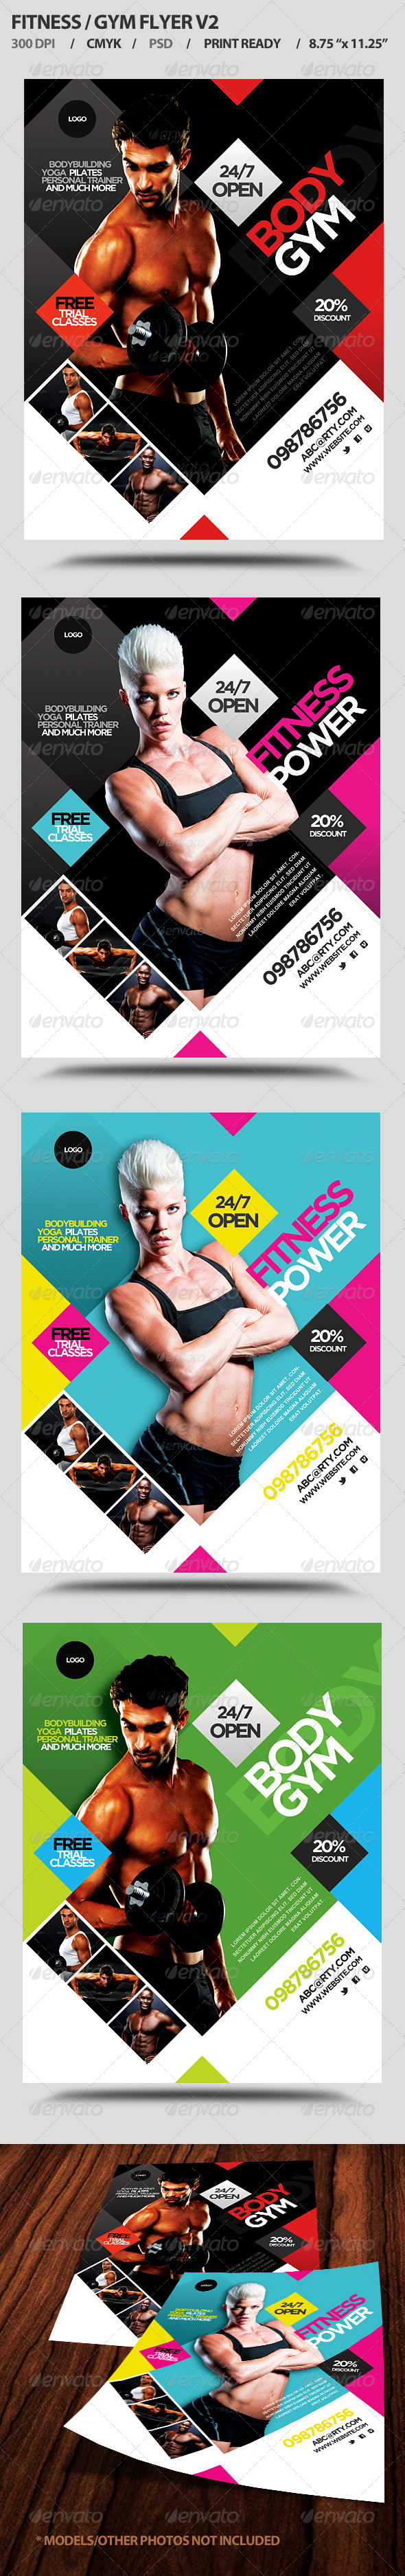 Fitness/Gym Business Promotion Flyer V2 - Flyers Print Templates